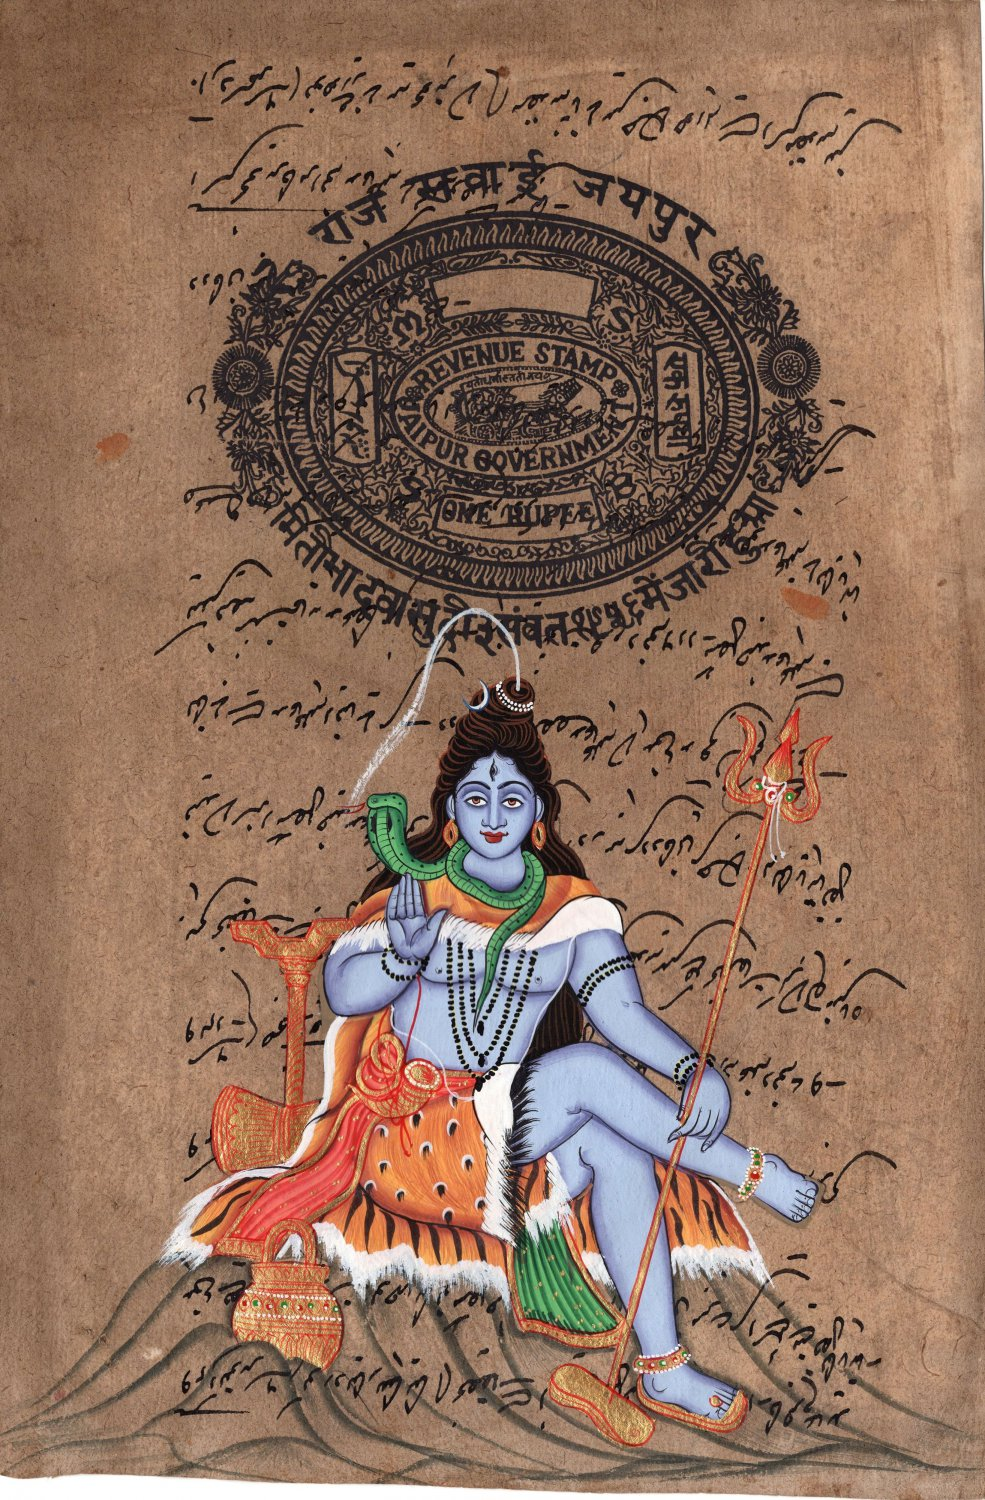 Shiva Artwork Handmade Old Stamp Paper Indian Religious Shiv Hindu God Painting